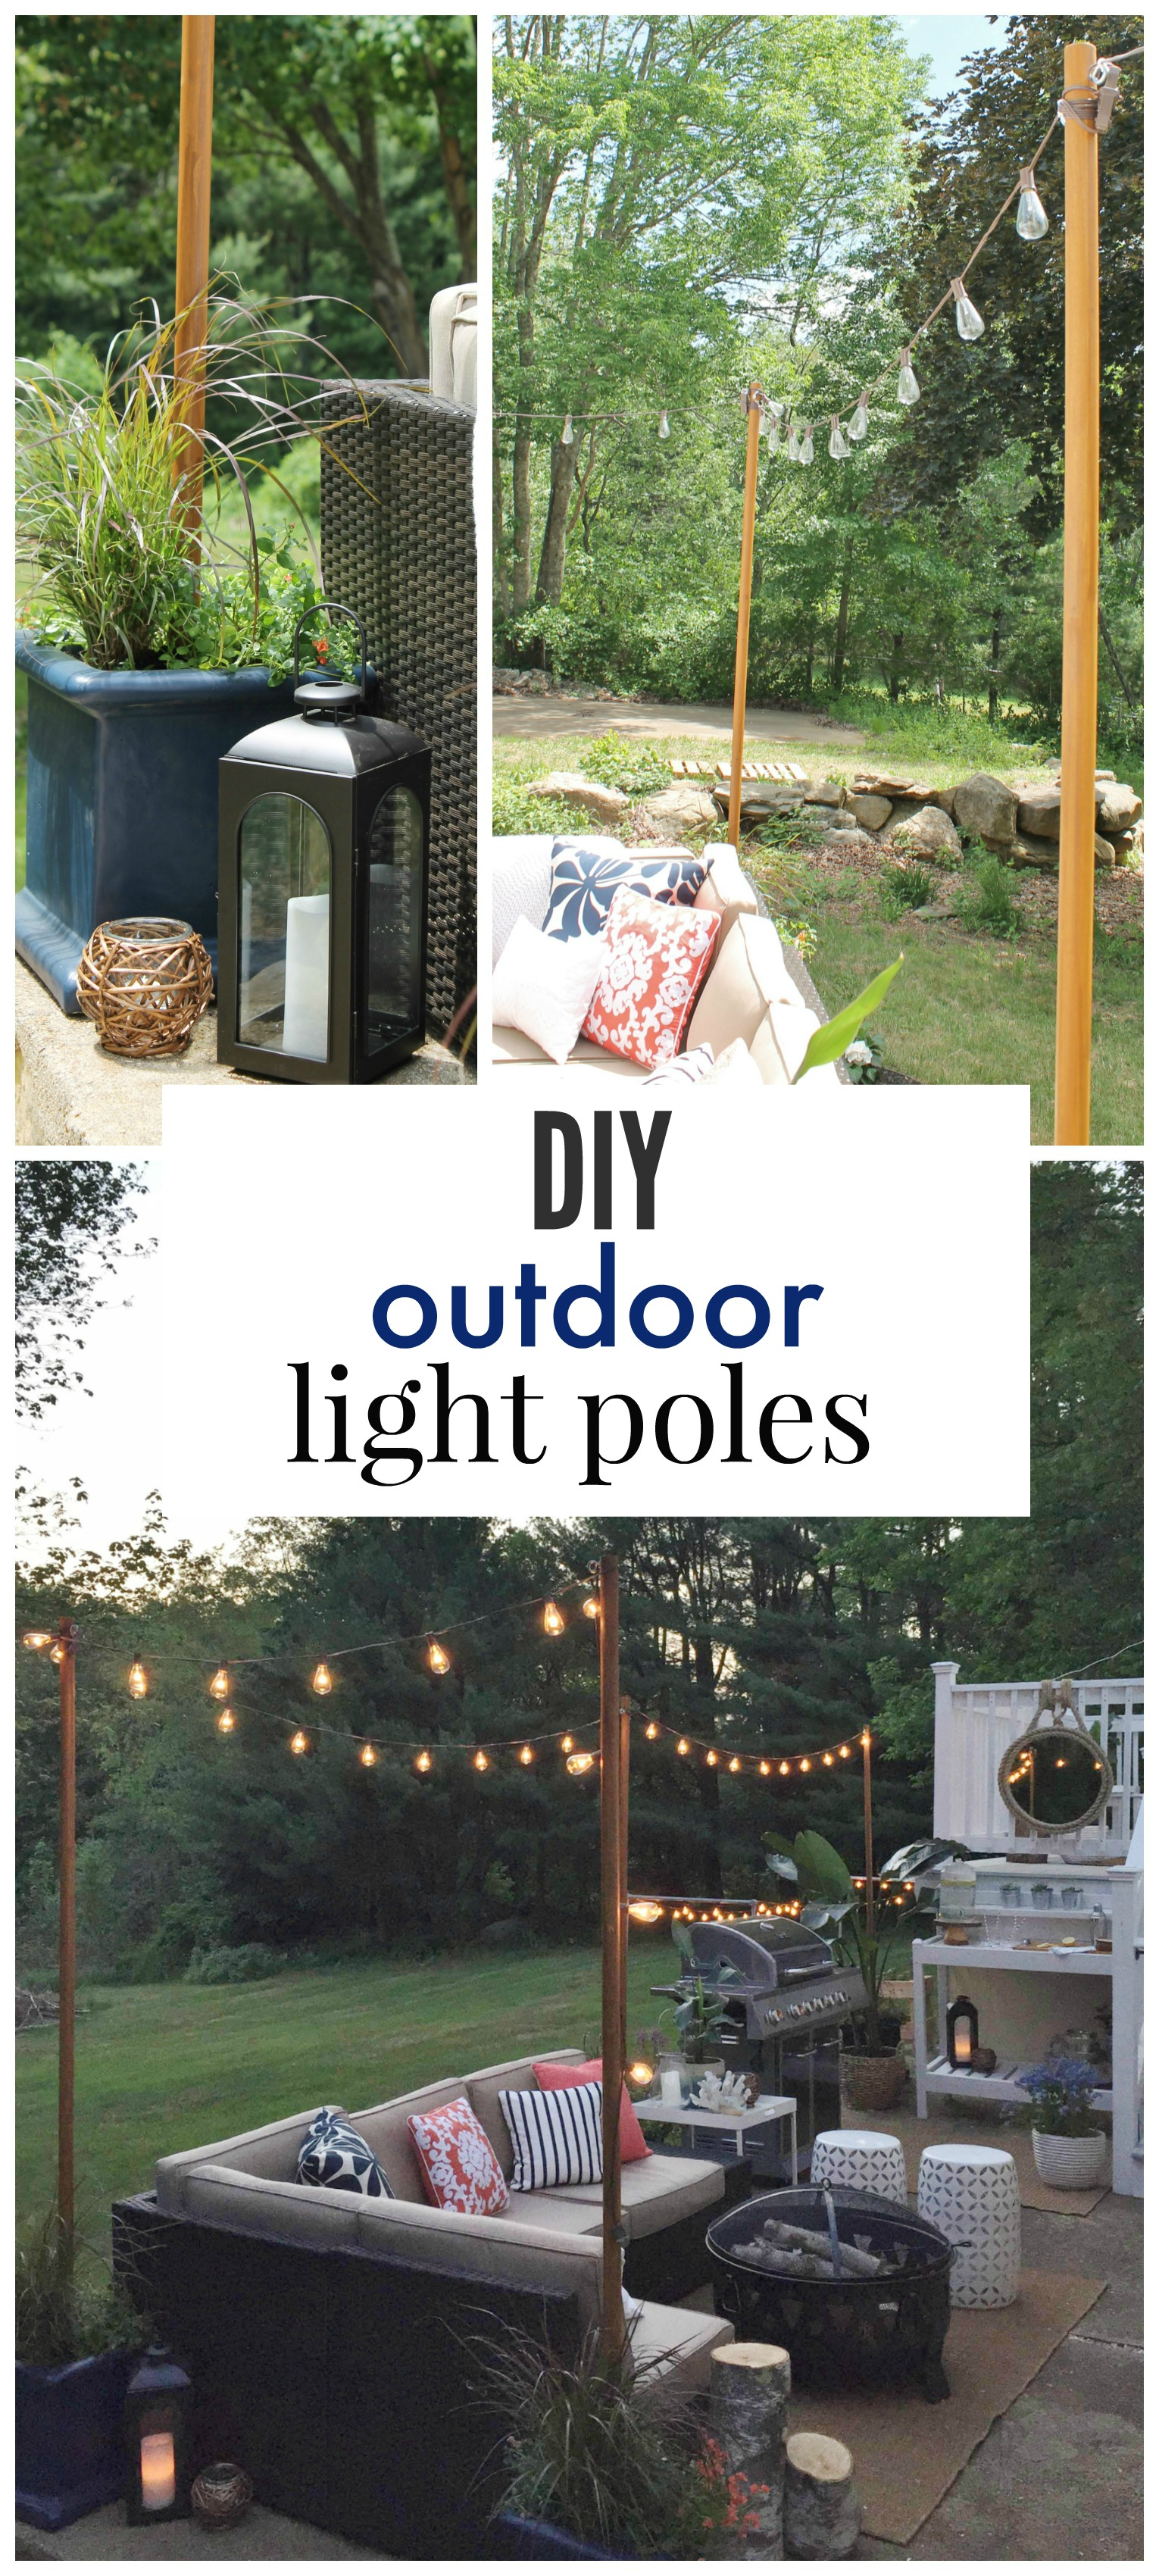 Diy outdoor light poles city farmhouse diy outdoor light poles everthing you need for outdoor lighting from lowes aloadofball Image collections